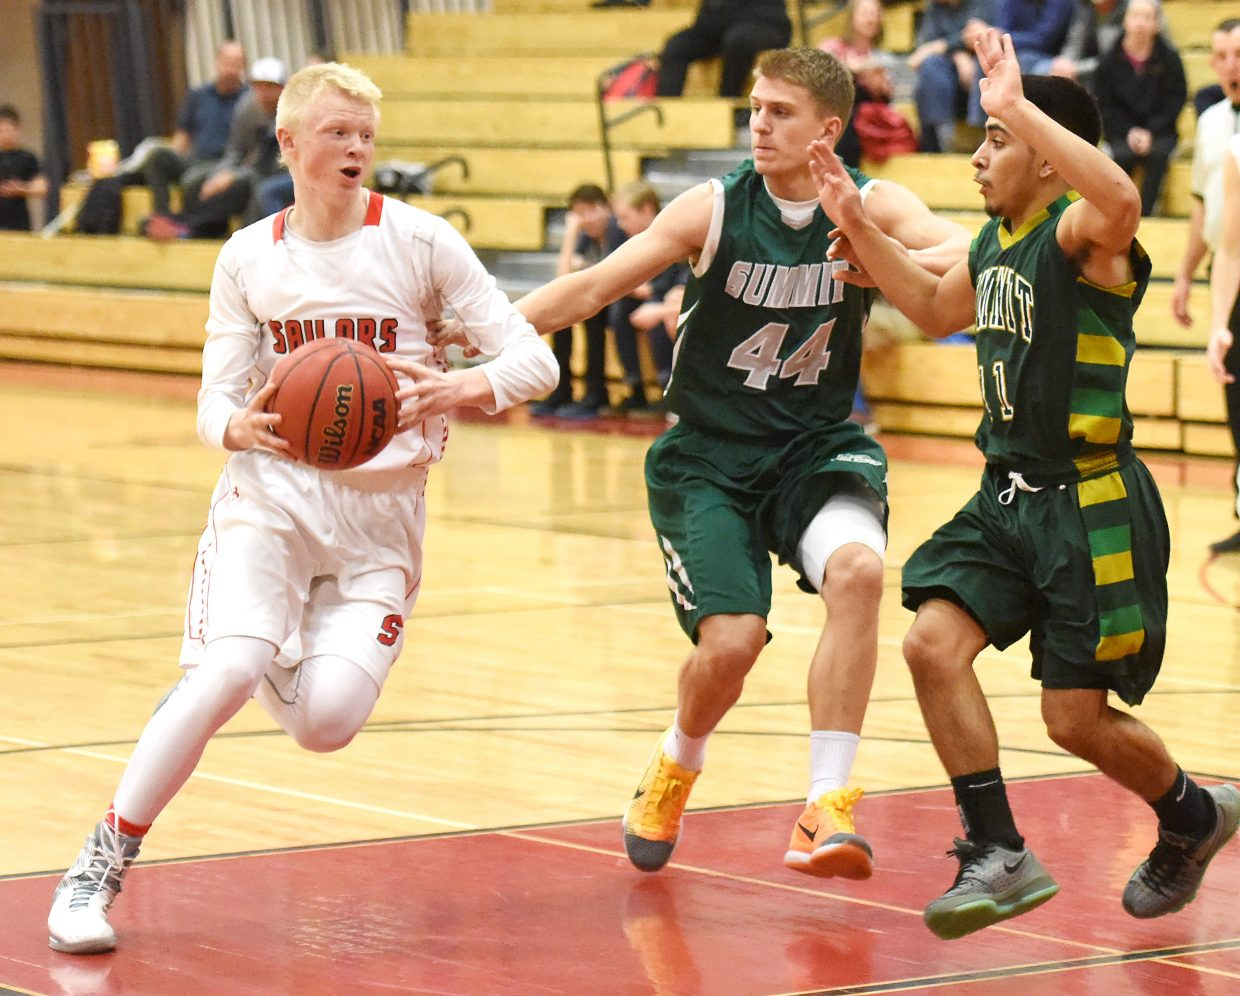 Steamboat's Ethan Riniker charges through the lane toward the basket Thursday in a win against Summit.